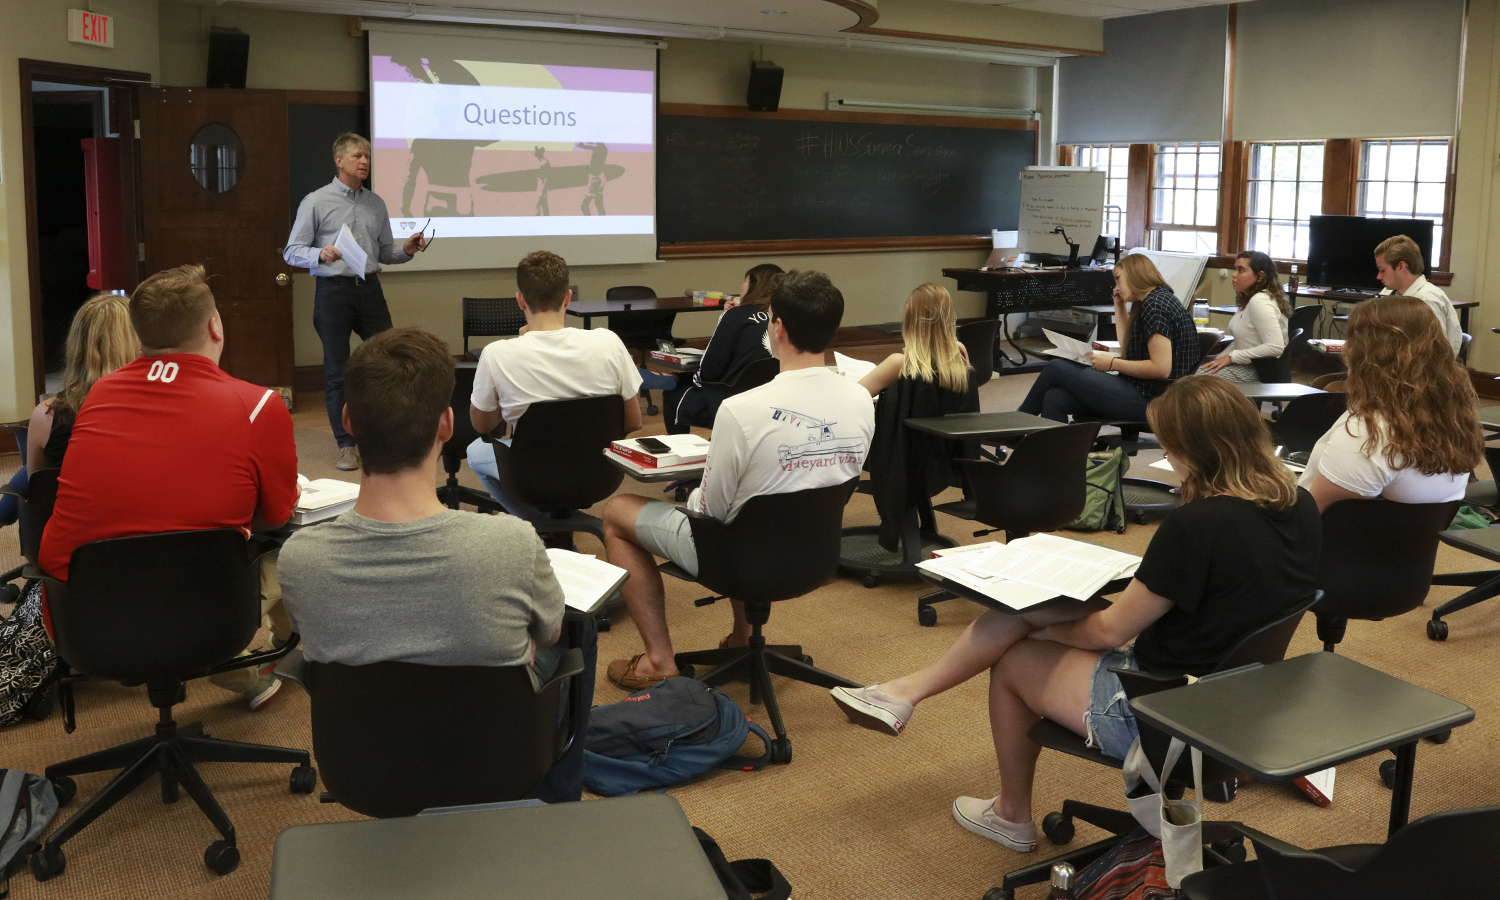 In Coxe Hall, Visiting Professor of Entrepreneurial Studies and Margiloff Family Entrepreneurial Fellow Ed Bizari speaks to students participating in the HWS Summer Sandbox Idea Accelerator, a program designed to serve as a launching point for student entrepreneurs and startup founders.